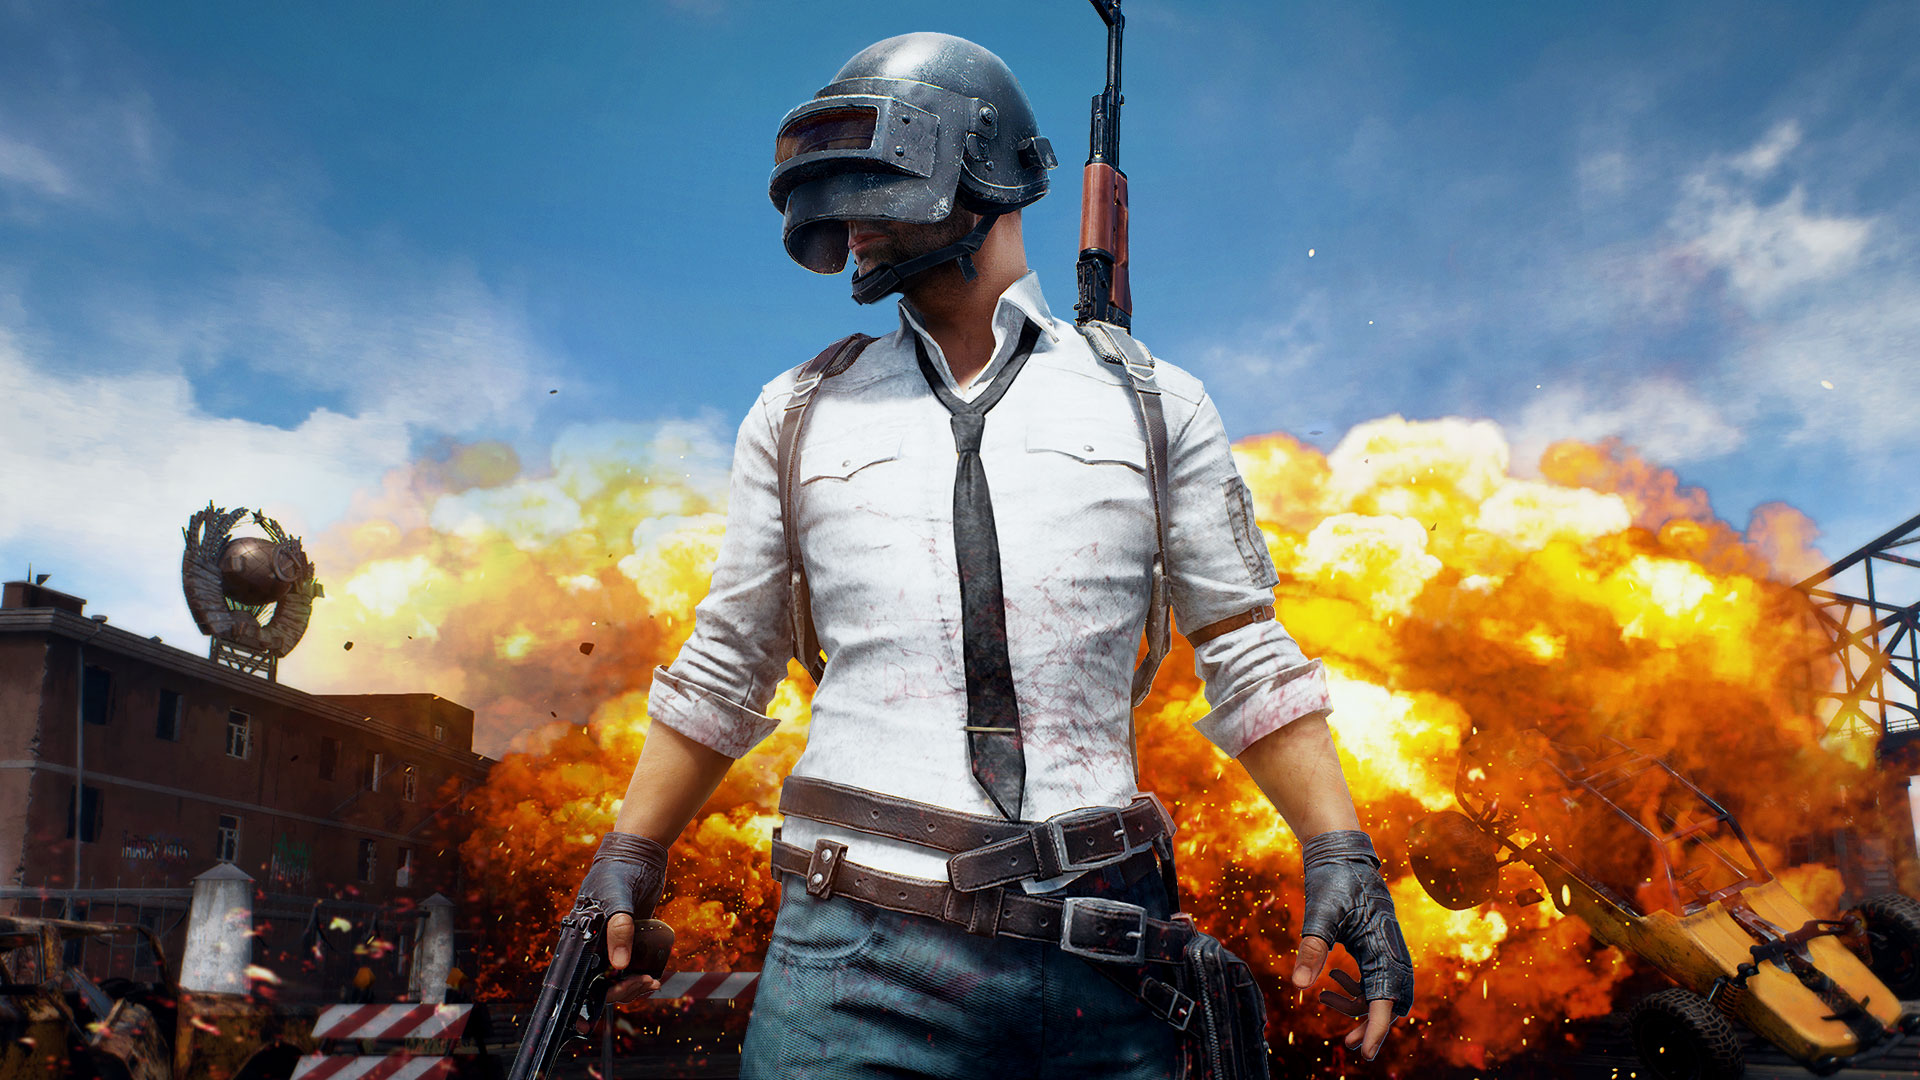 Downloaded by 100 Million The PUBG Mobile Madness Unraveled for You